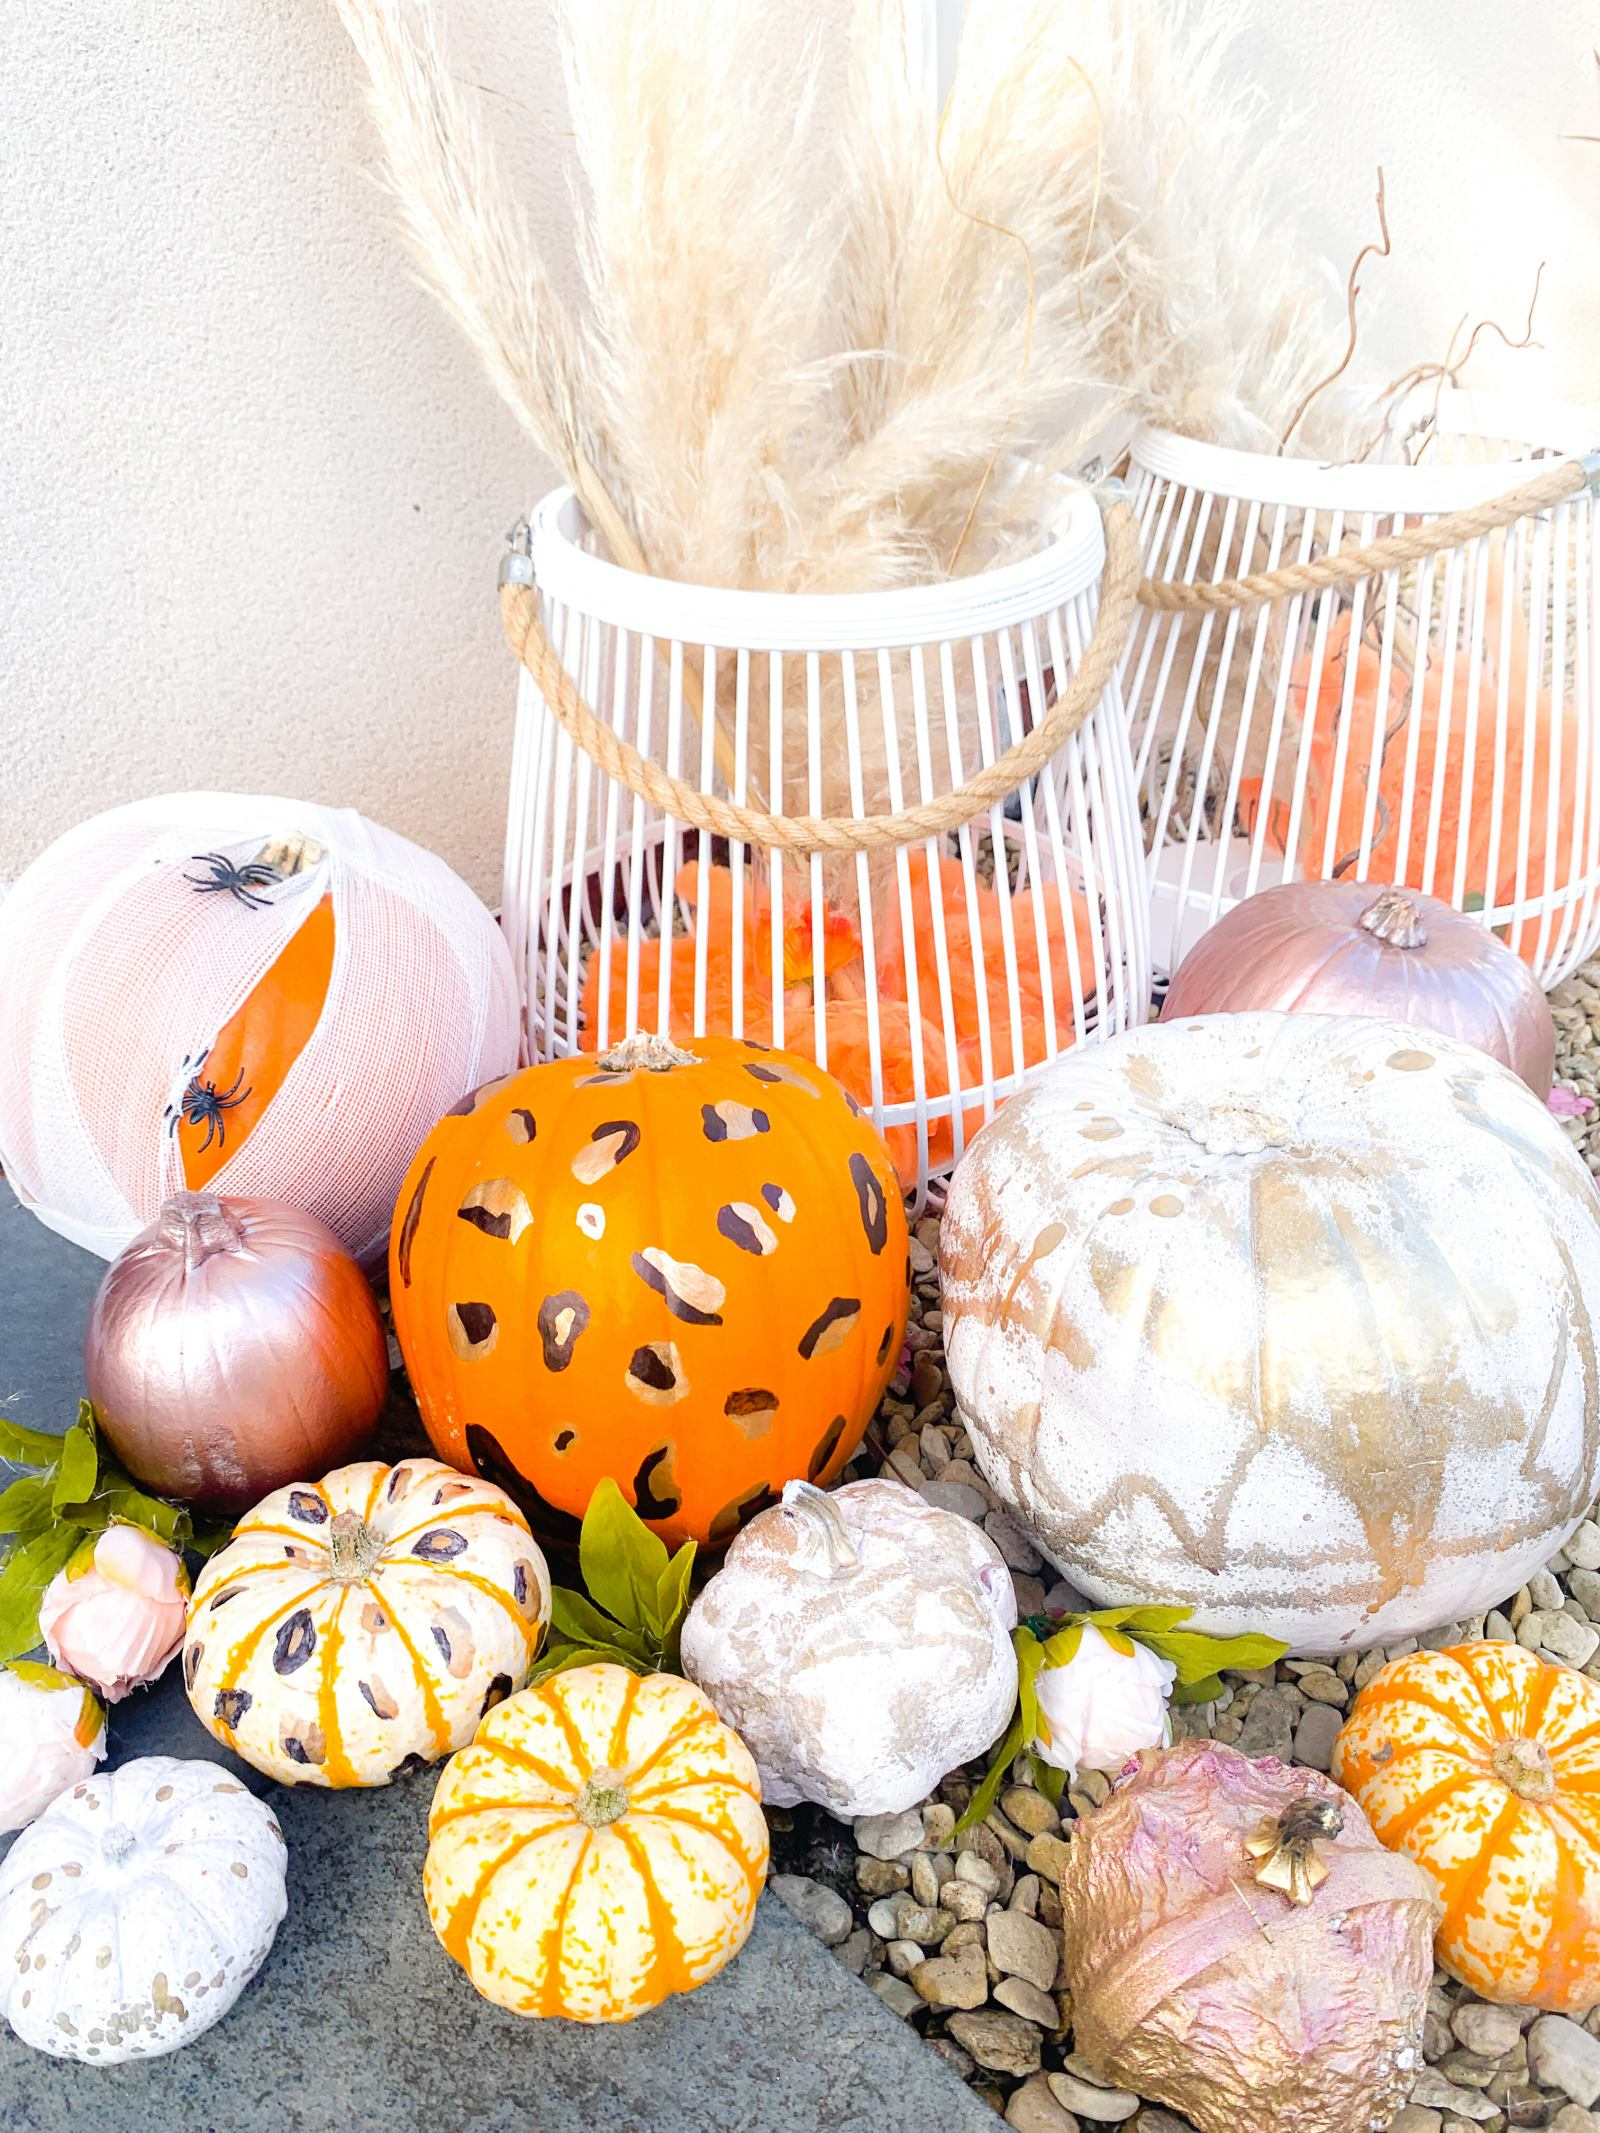 5 easy carve free pumpkin ideas